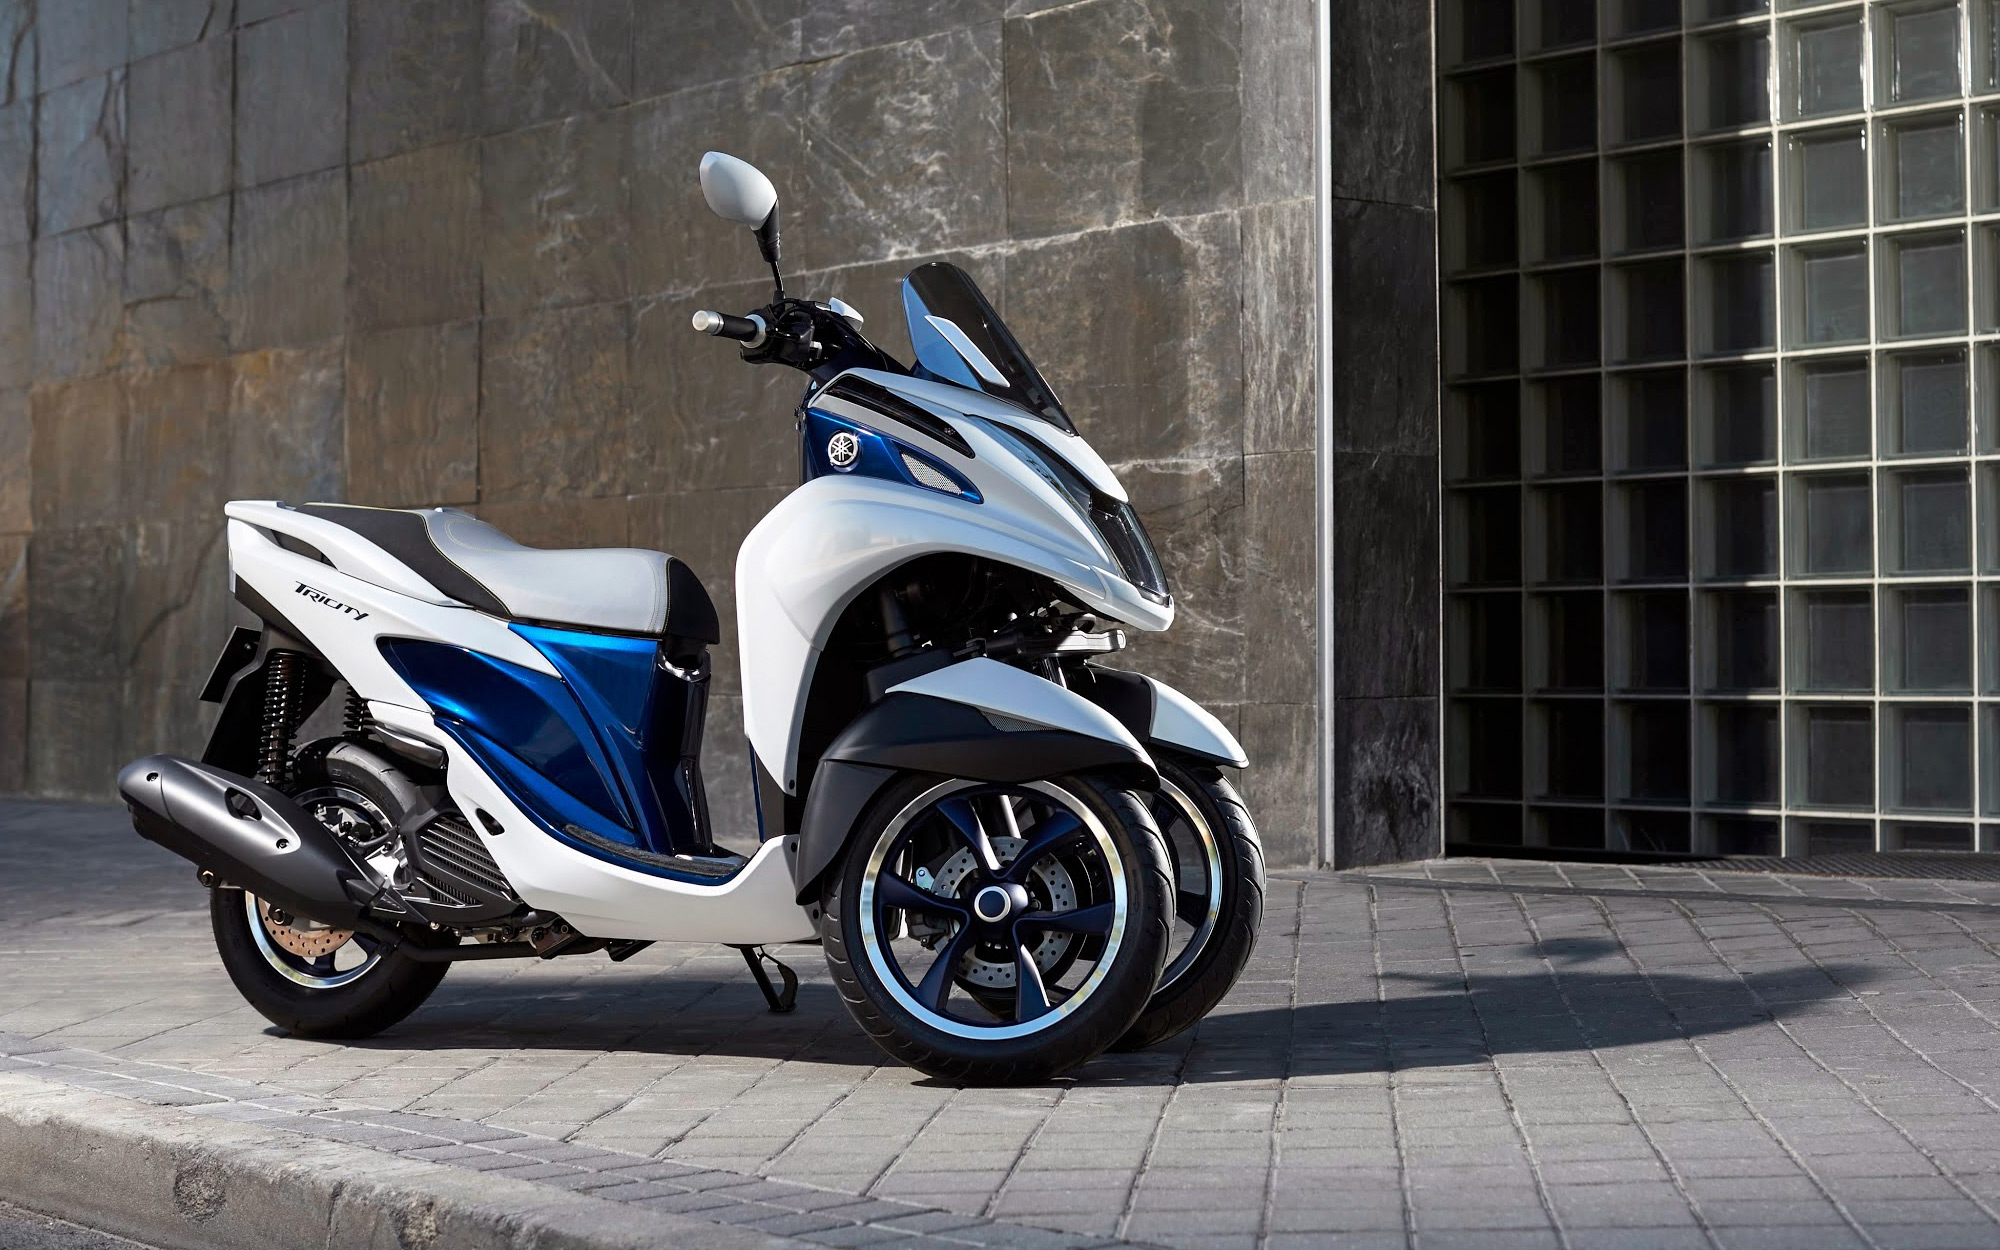 Yamaha tricity - a three-wheel leaning scooter with cvt